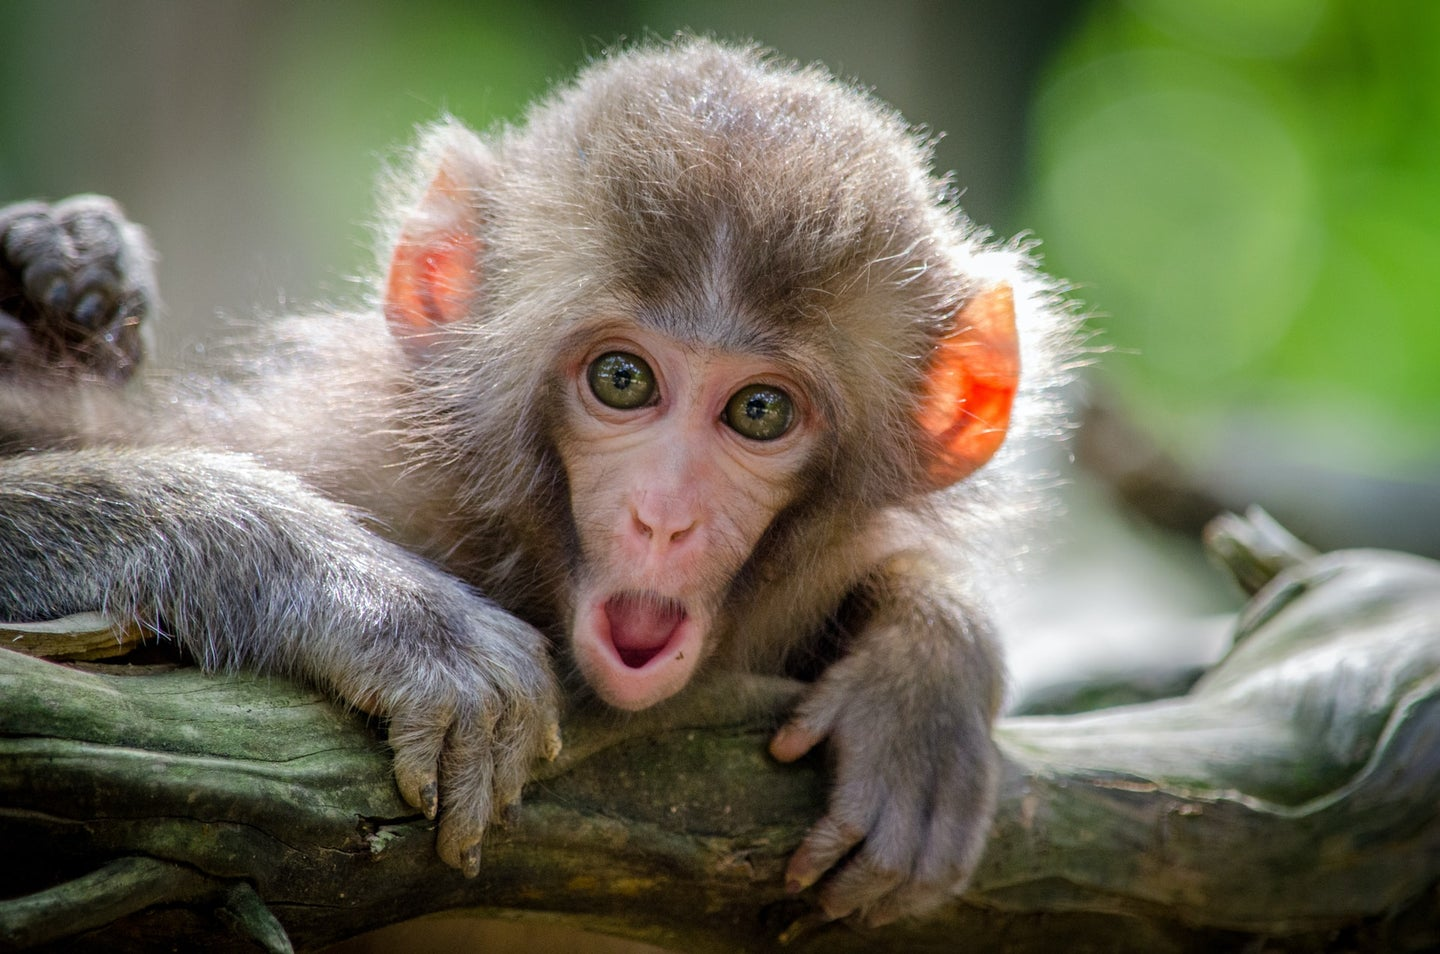 A small monkey looking surprised